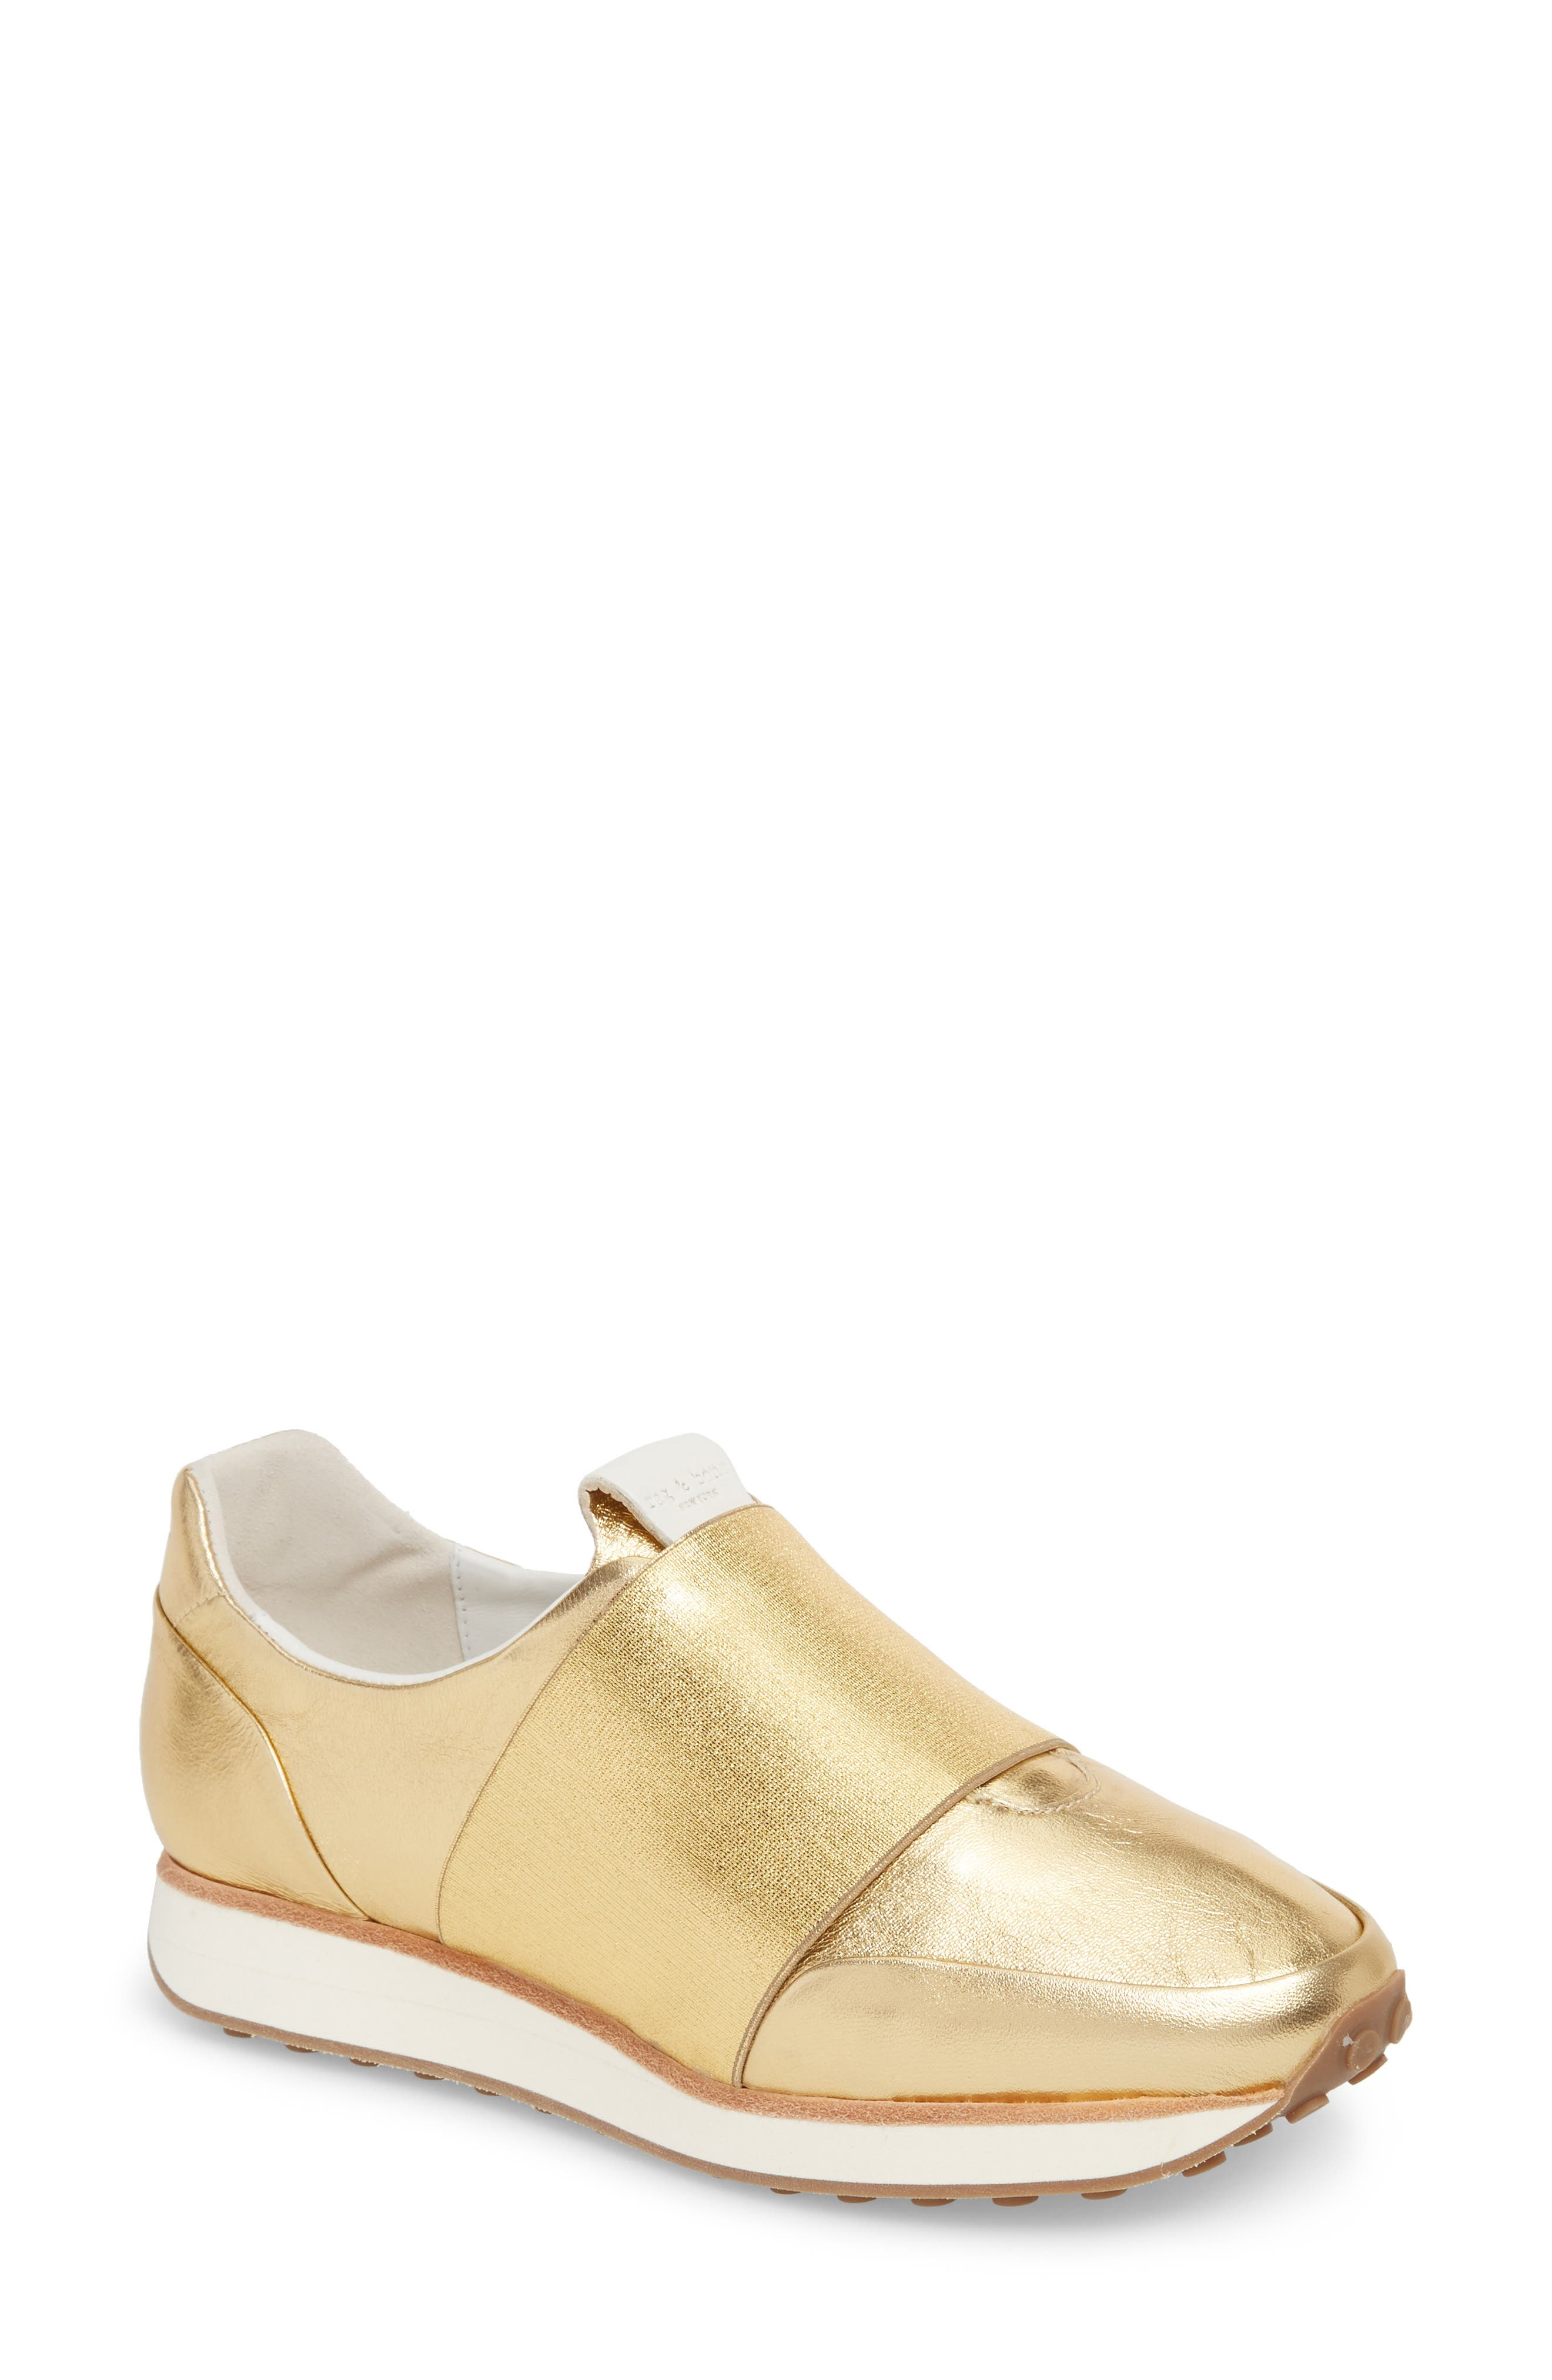 Dylan Sneaker,                         Main,                         color, GOLD